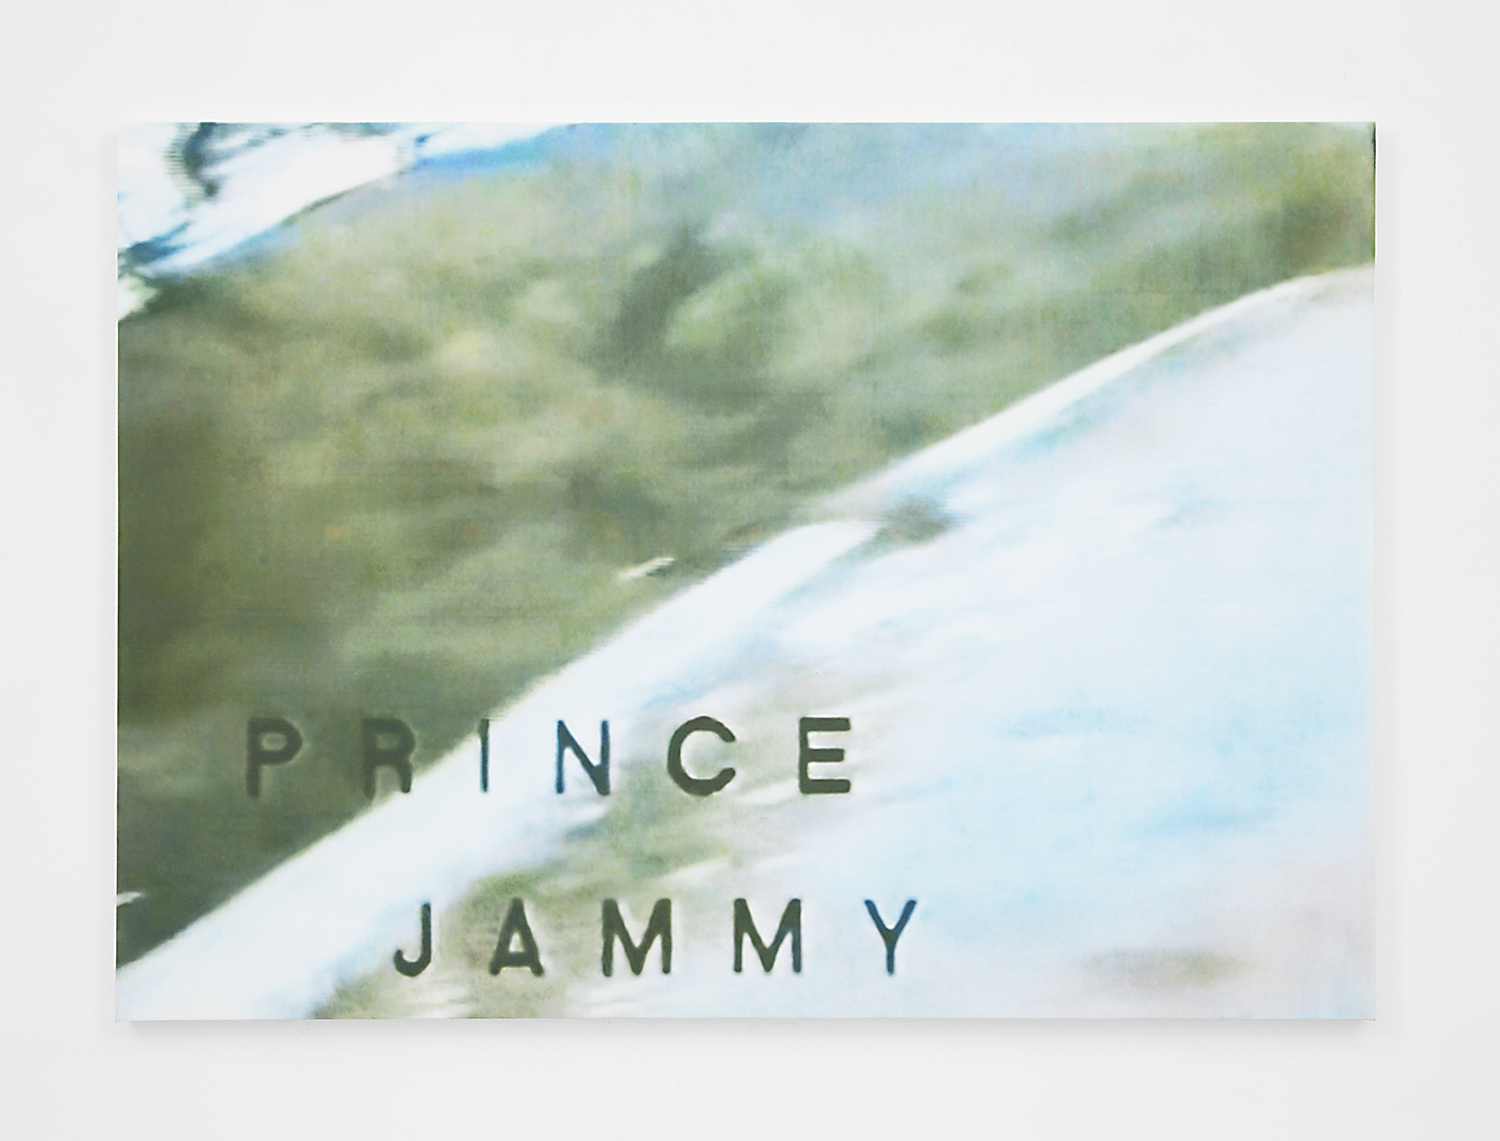 Prince Jammy , 2015 Oil on canvas 25.75 x 36 inches